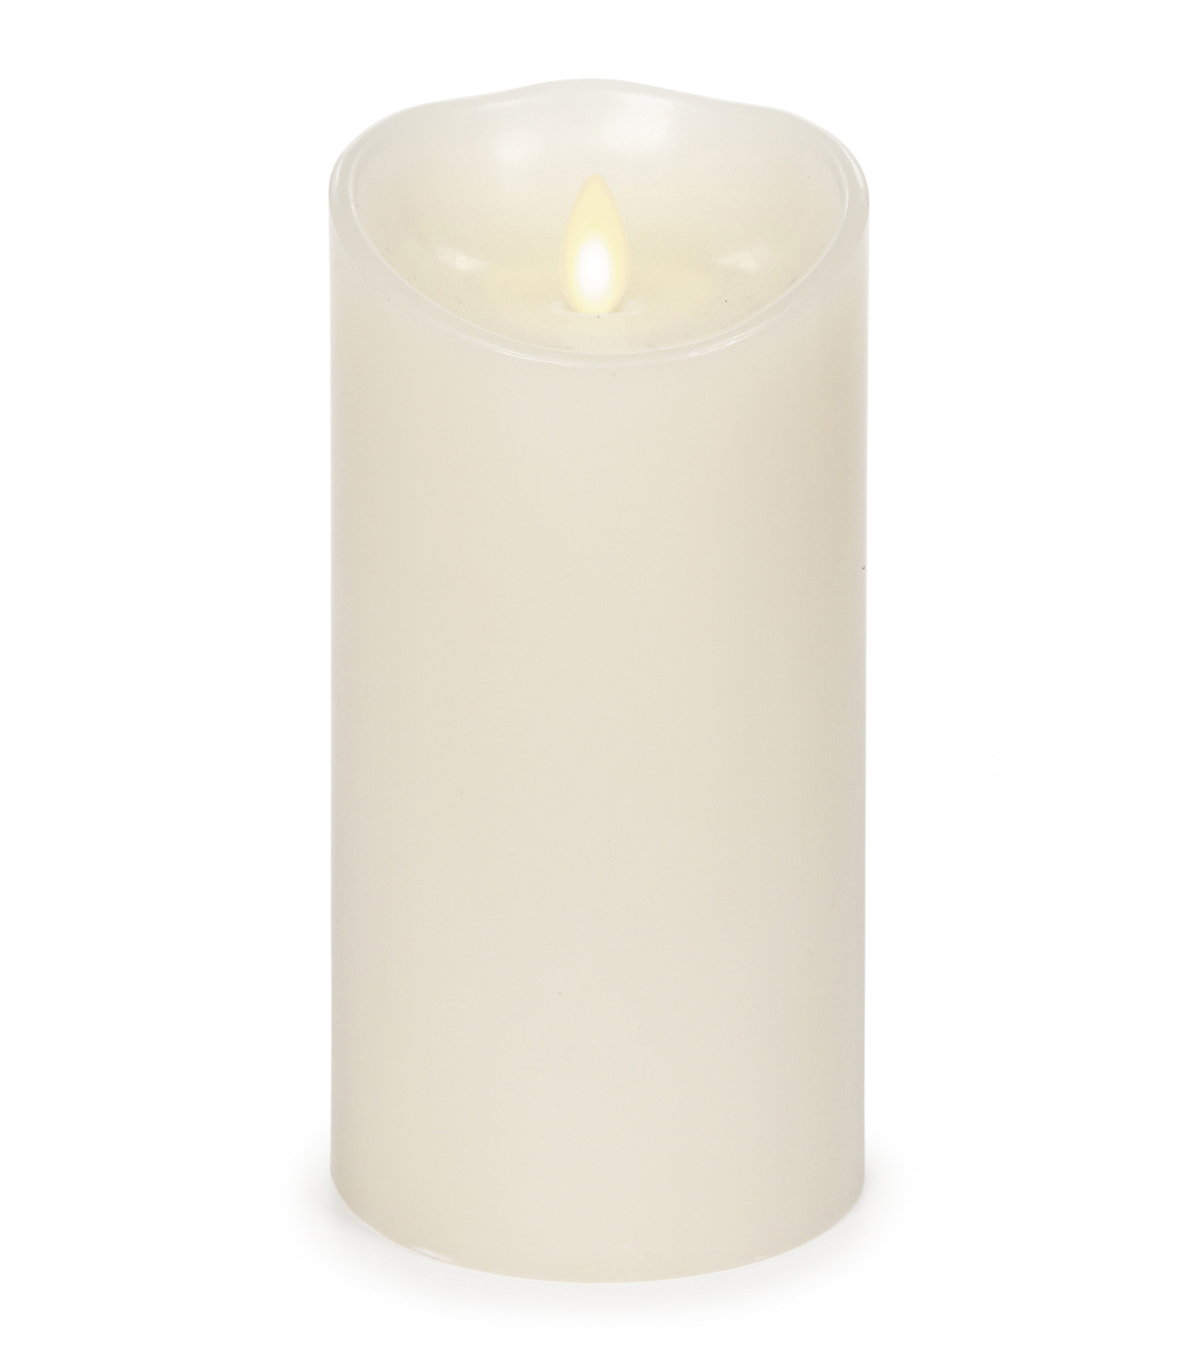 Luminara® Candle & Light Collection Luminara 7 In Ivory Timer Vanilla Scent